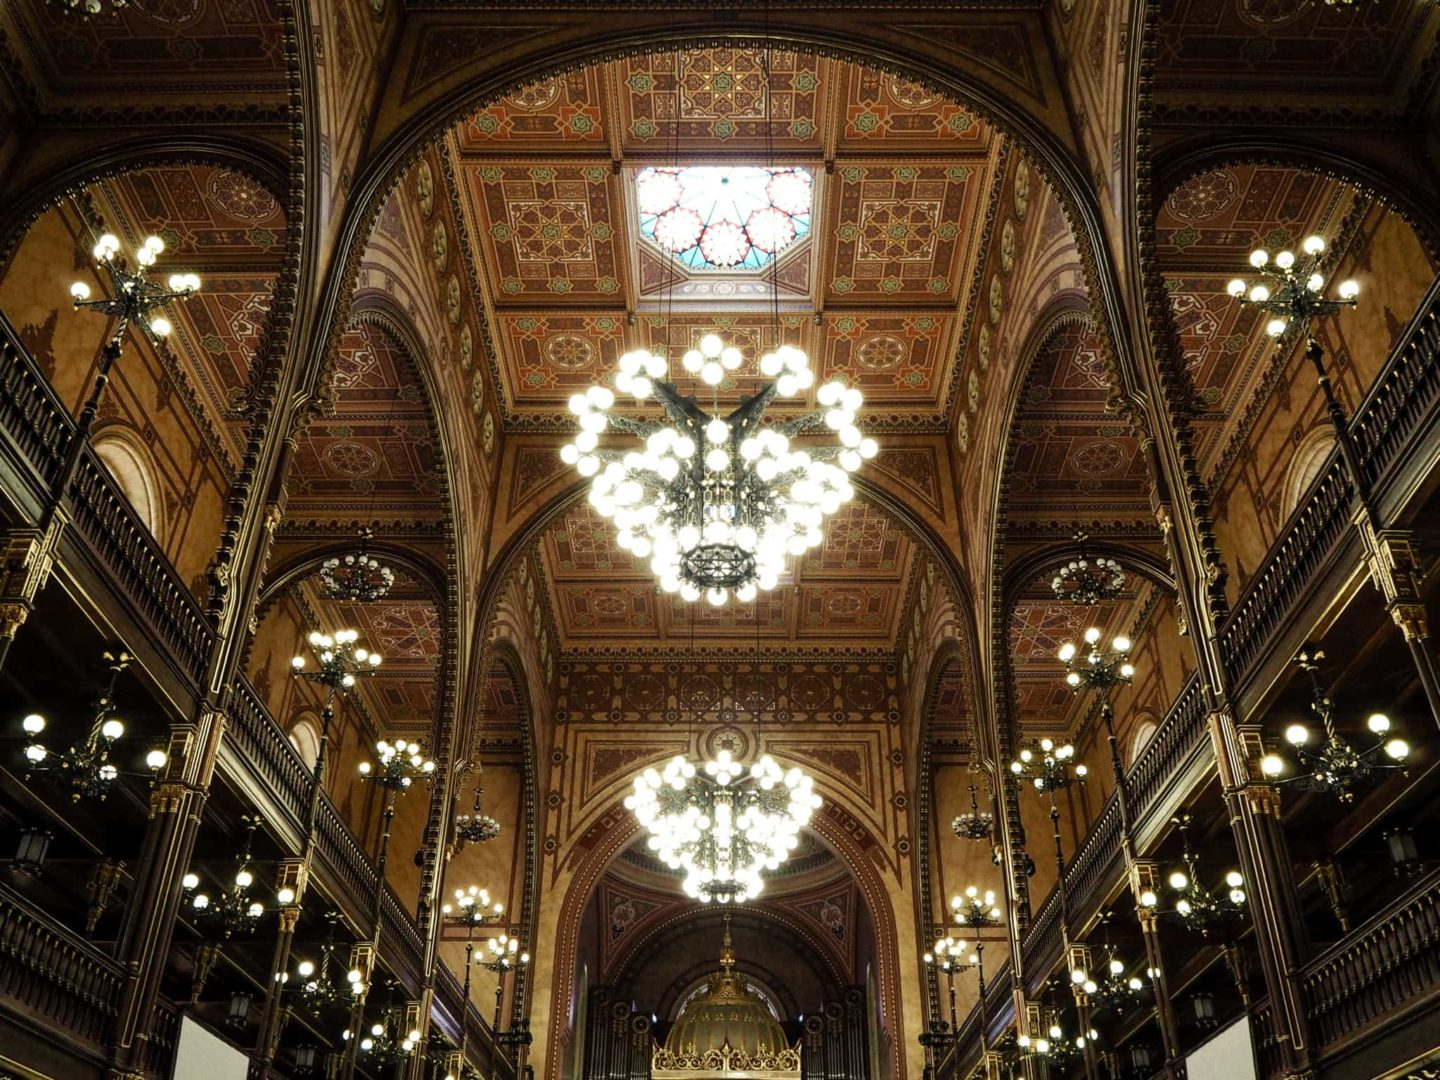 3 Day Budapest Itinerary - The Great Synagogue ceiling and chandelier